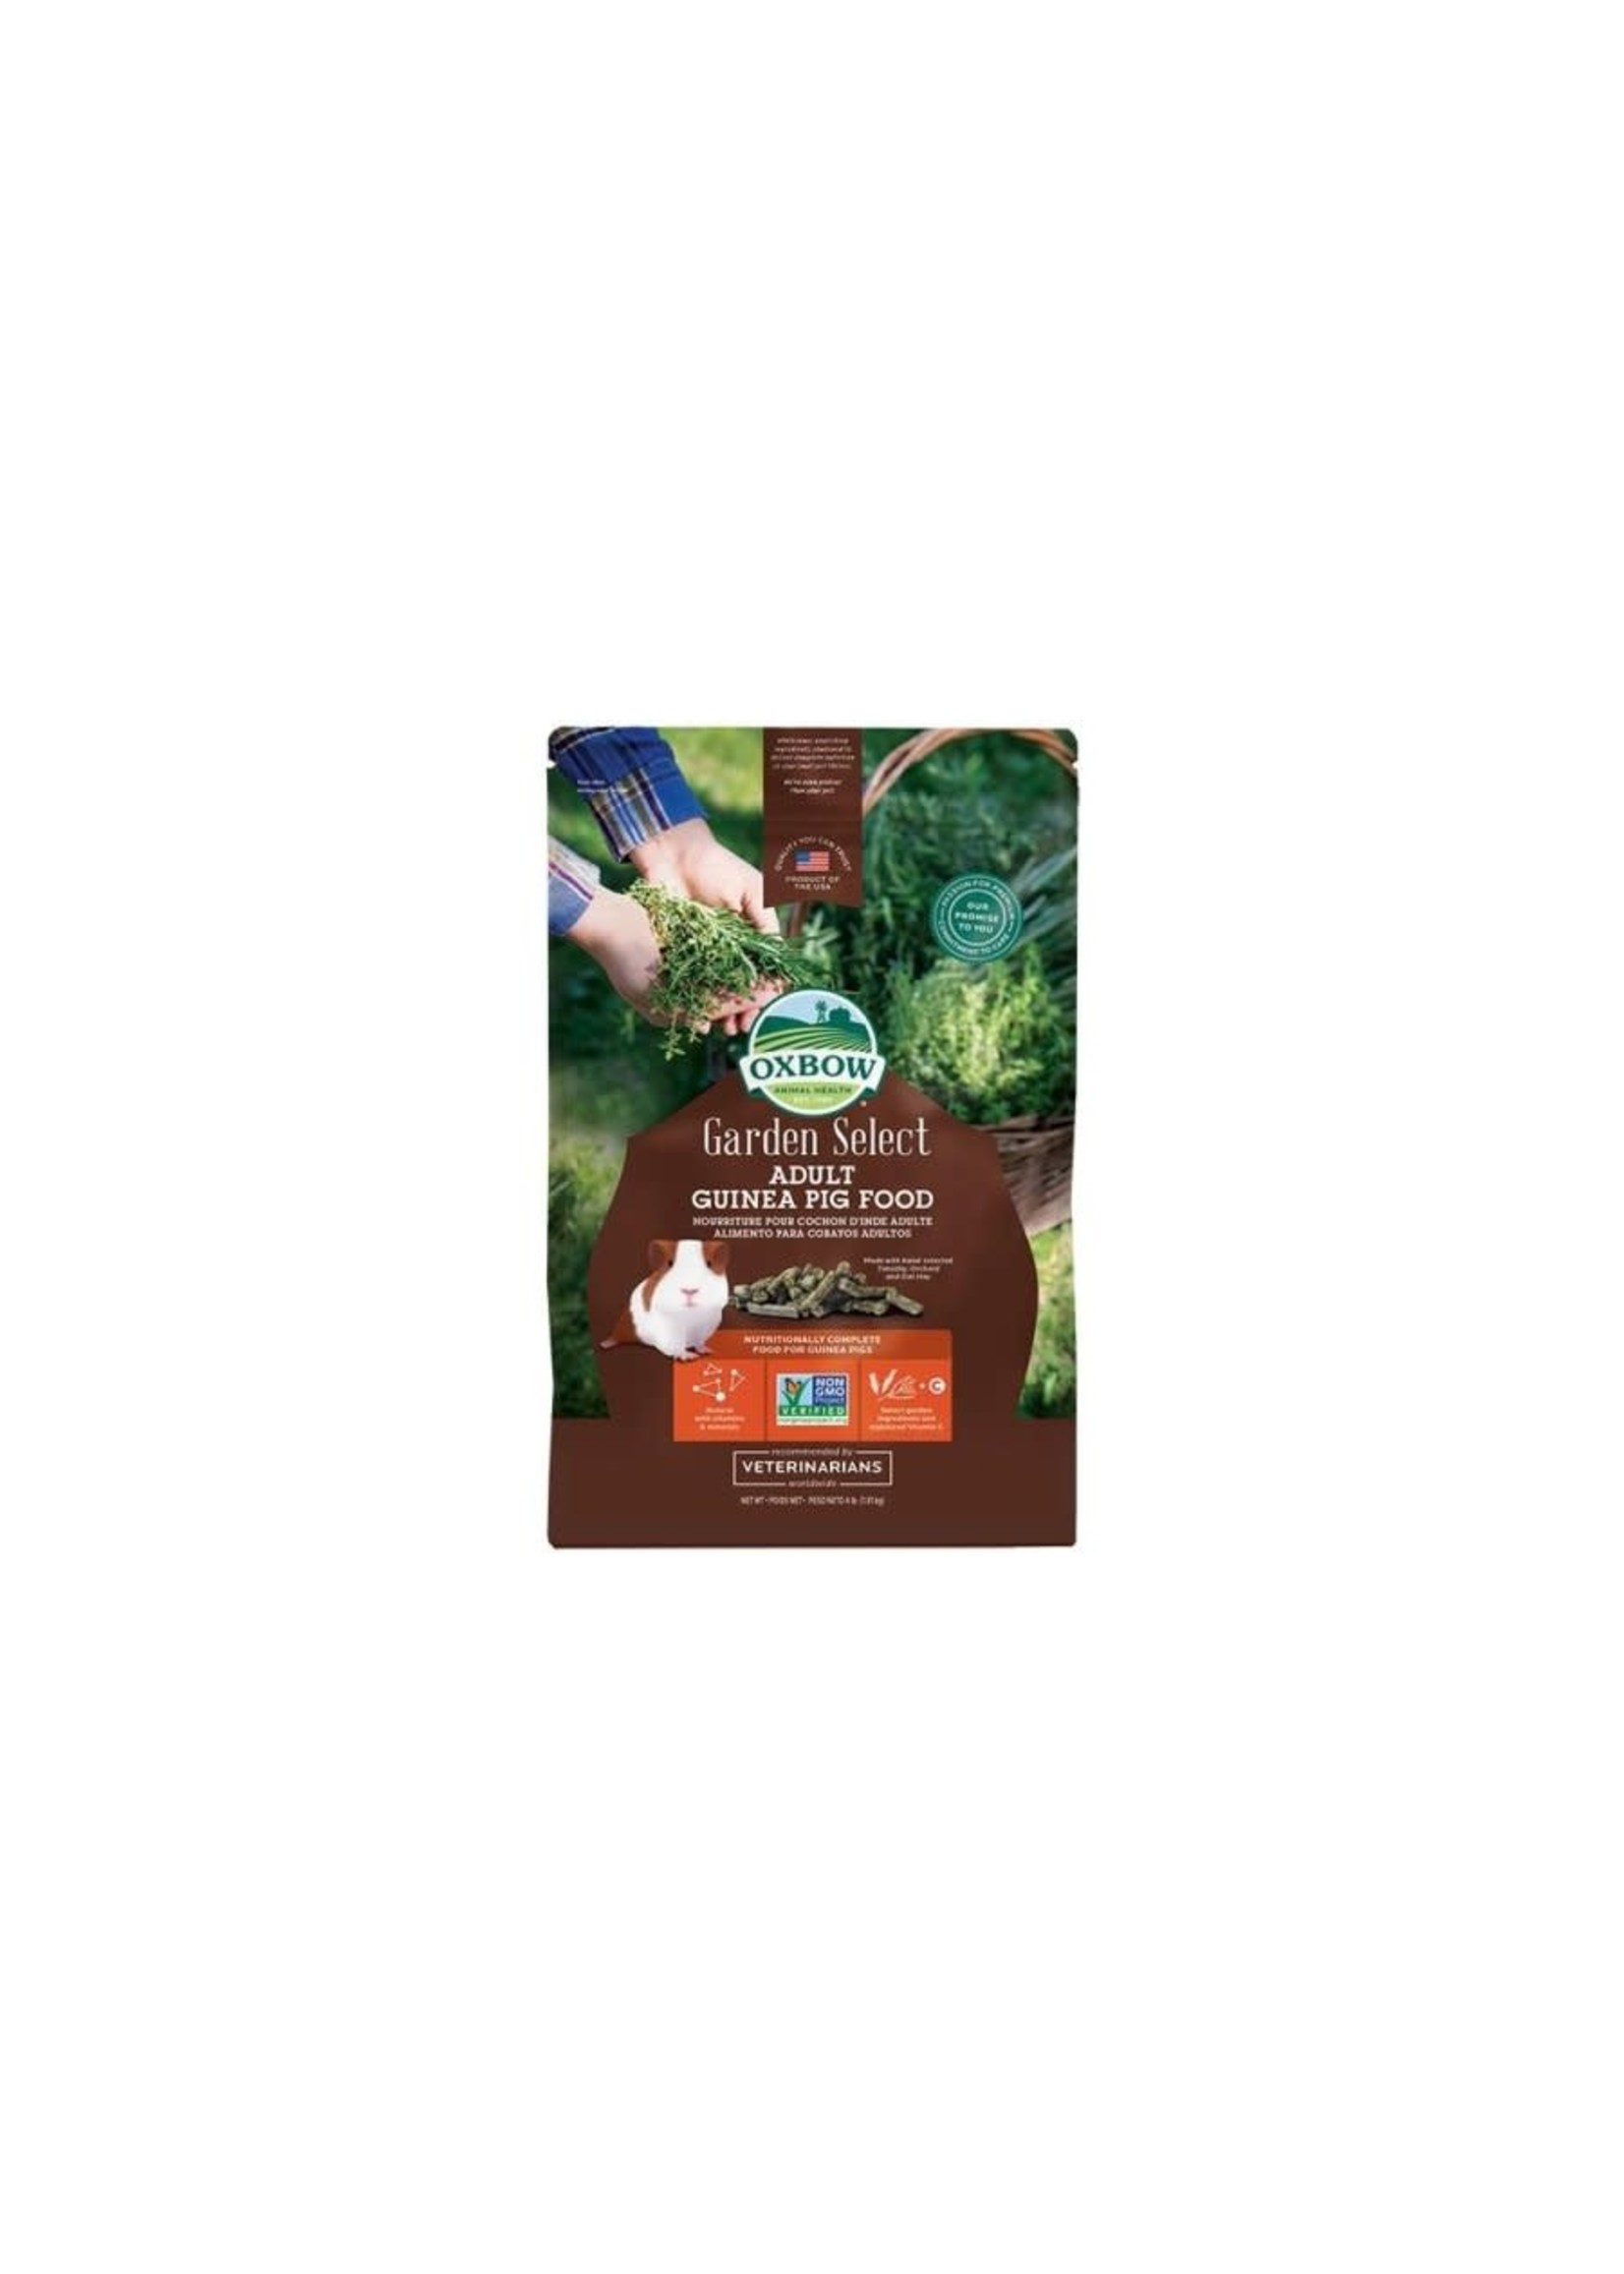 Oxbow Oxbow rongeur garden select cochon d'Inde adulte 8 lbs